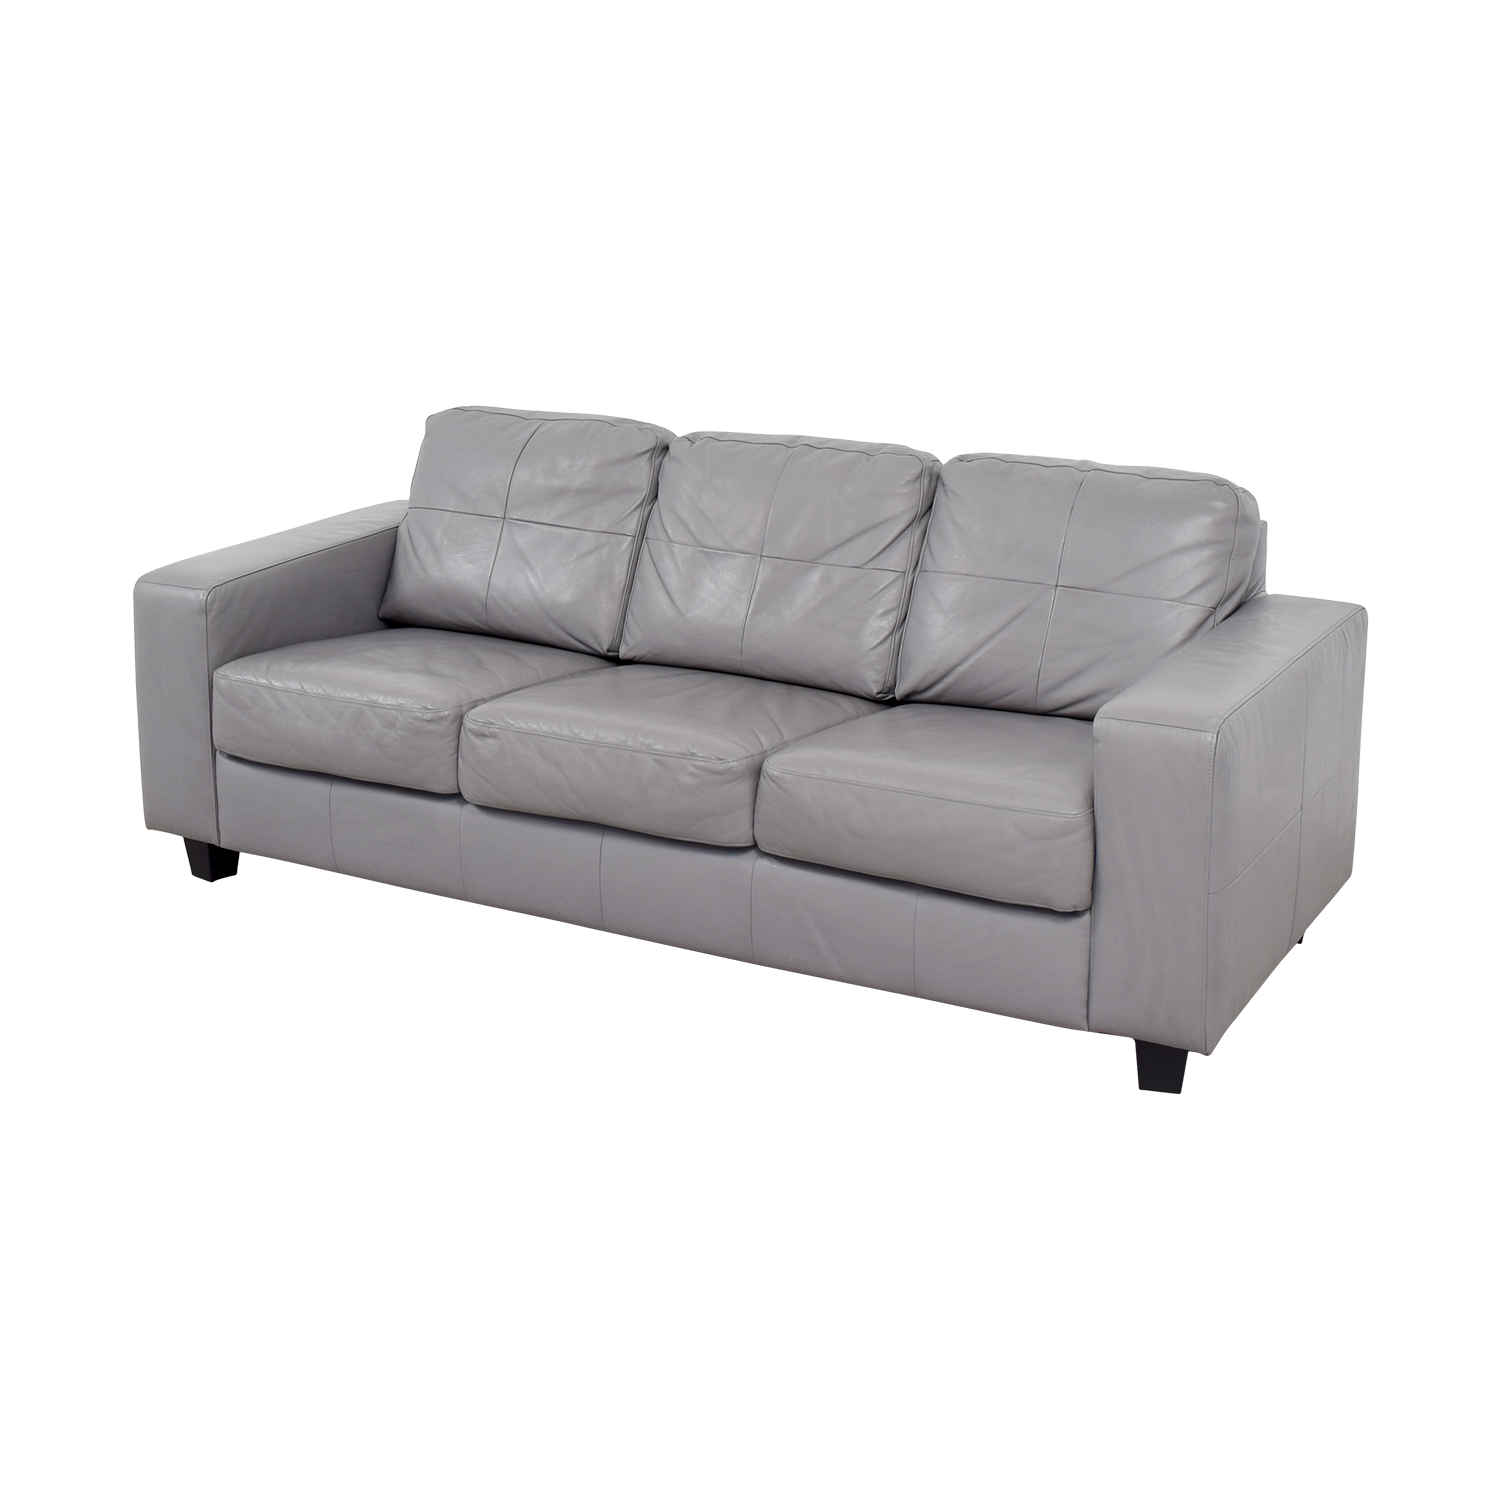 53 off ikea ikea skogaby light grey sofa sofas for Ikea gray sofa